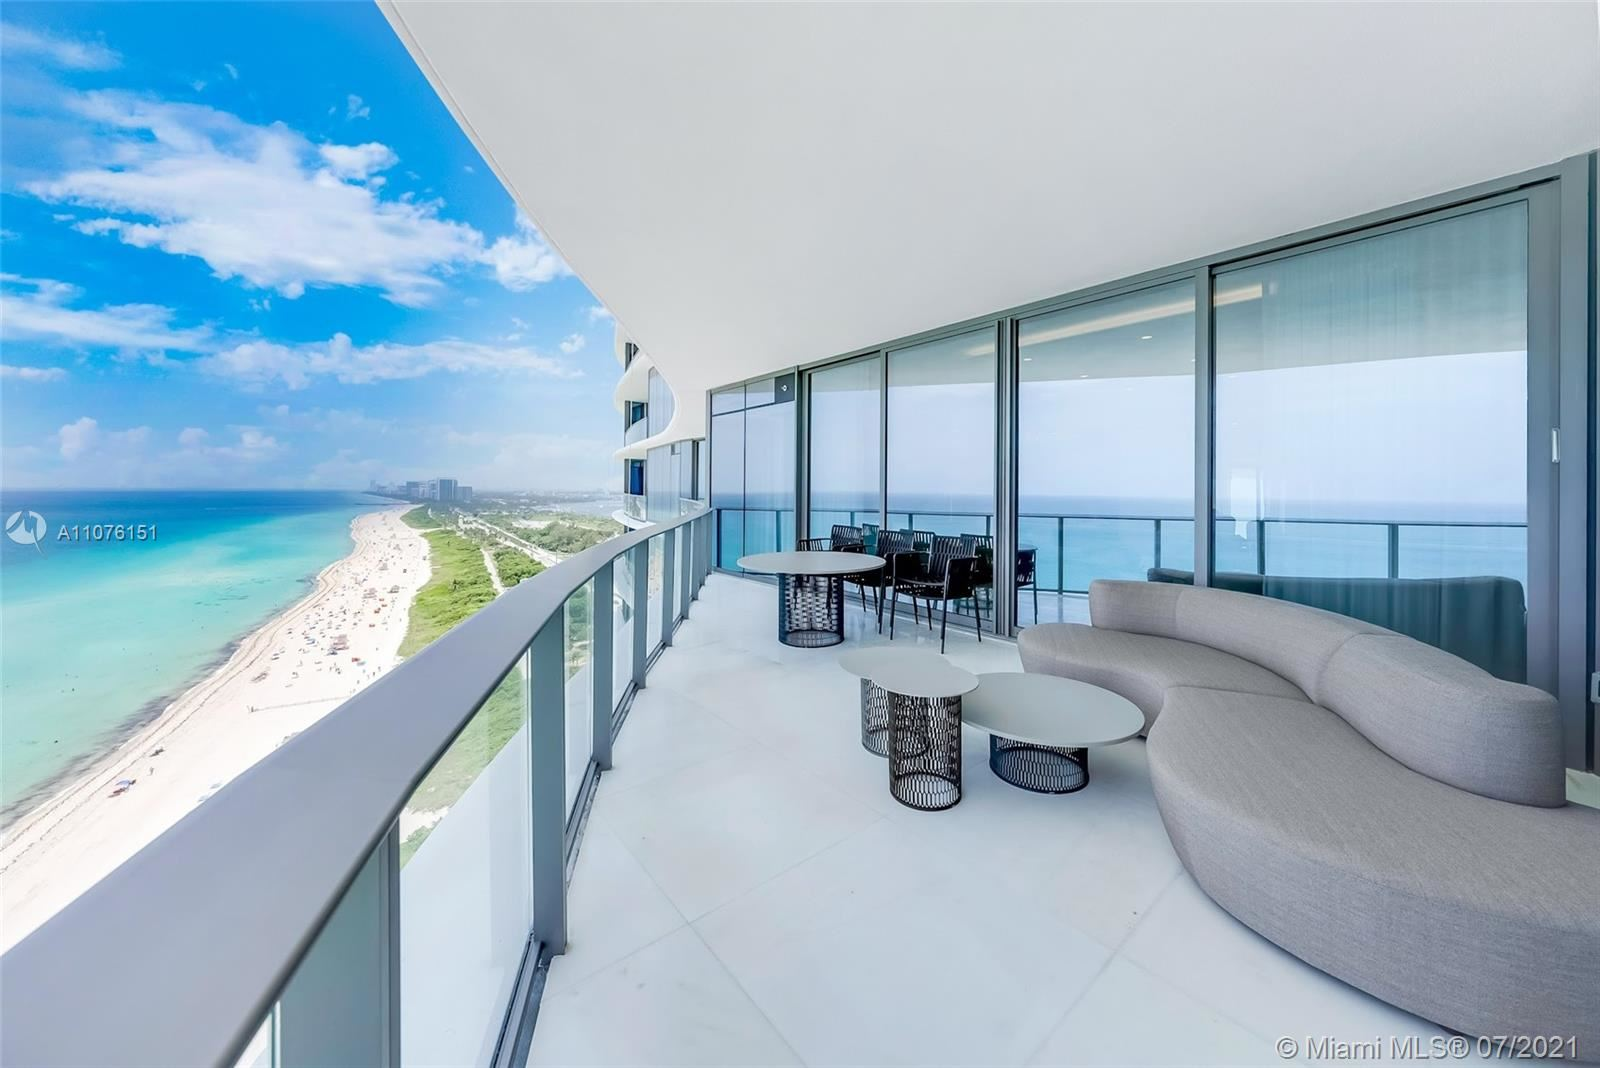 15701 Collins Ave #1902, Sunny Isles, FL 33160 - #: A11076151